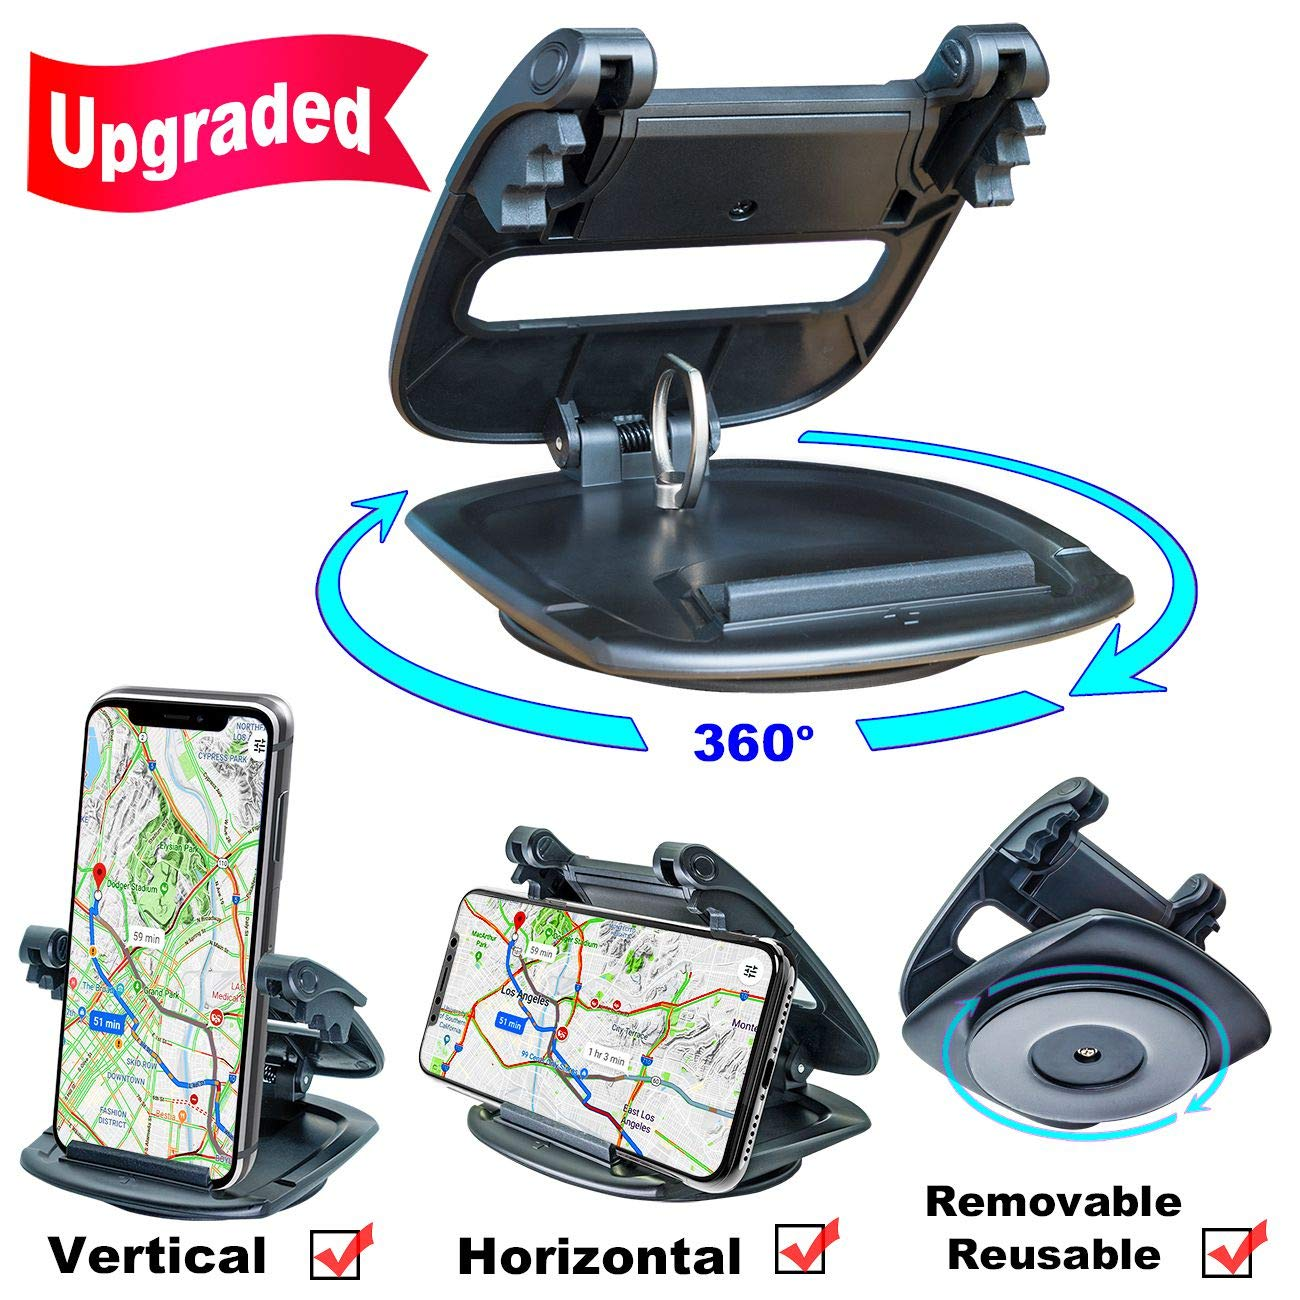 Cell Phone Holder for Car Dashboard, (2nd Gen Plus) Car Phone Mount Silicone Dash Pad, GPS Holder Car Phone Mounting in Pickup Truck Compatible iPhone Xs Max XR Plus Samsung Galaxy Note 9 S9 Car Kits by aneaseit